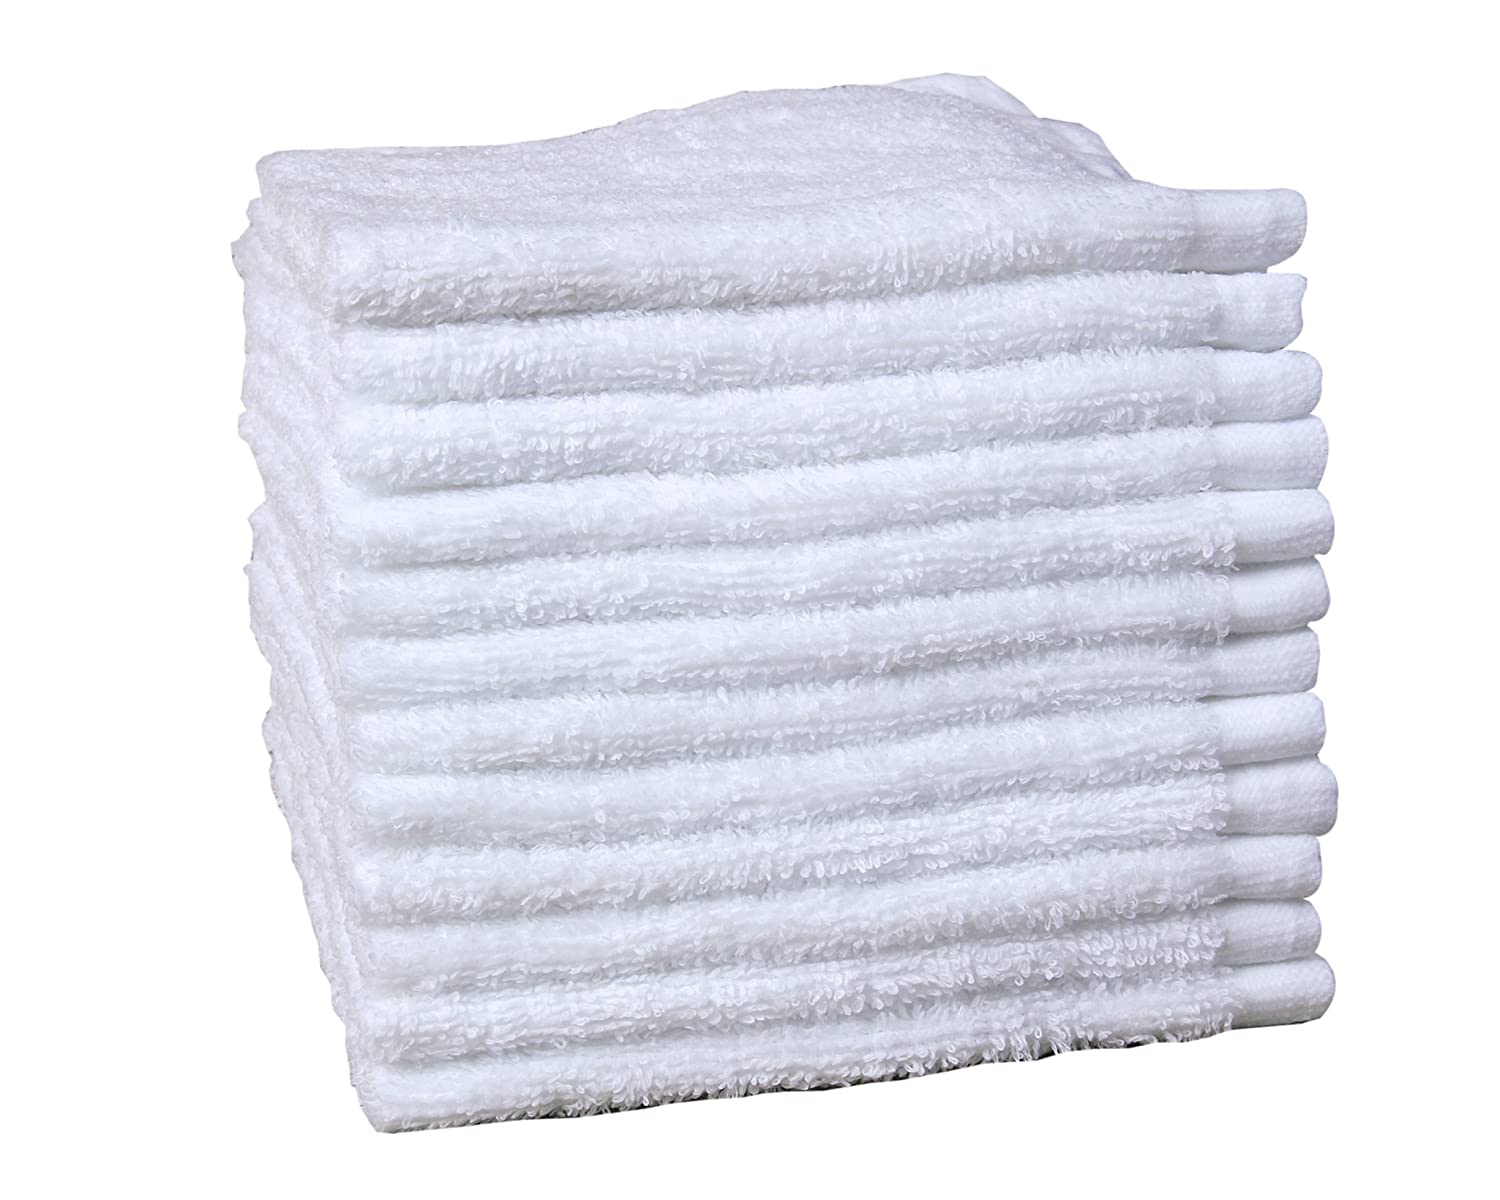 Jonny&Lora 12-Pack White 100% Cotton Compressed Washcloths 12